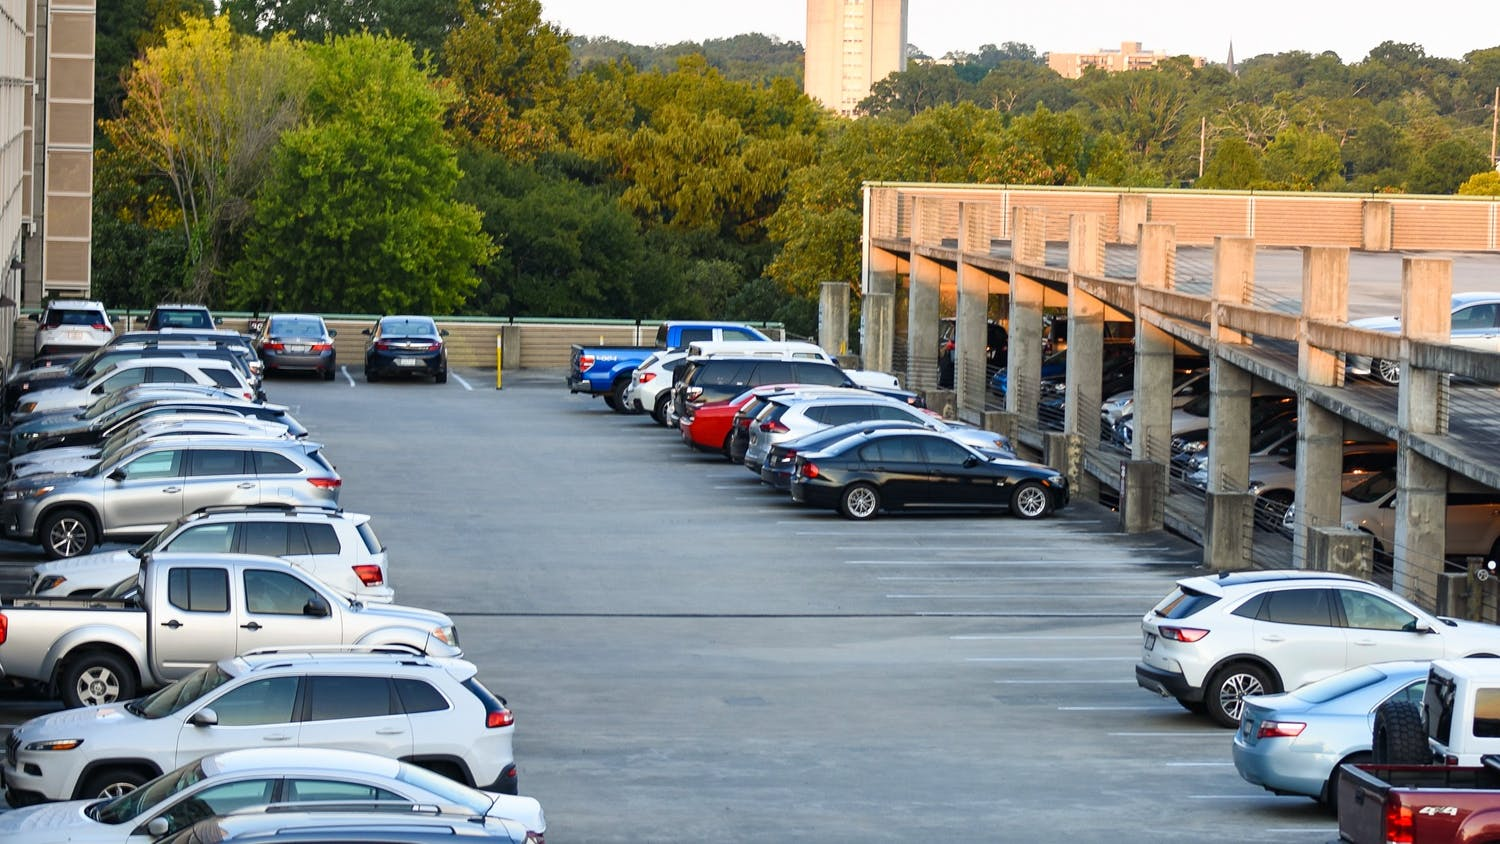 Cars parked on the top levels of the Bull Street Parking Garage. The university is expanding parking options toward the borders of campus to encourage walking and biking, which some students say further limits parking.